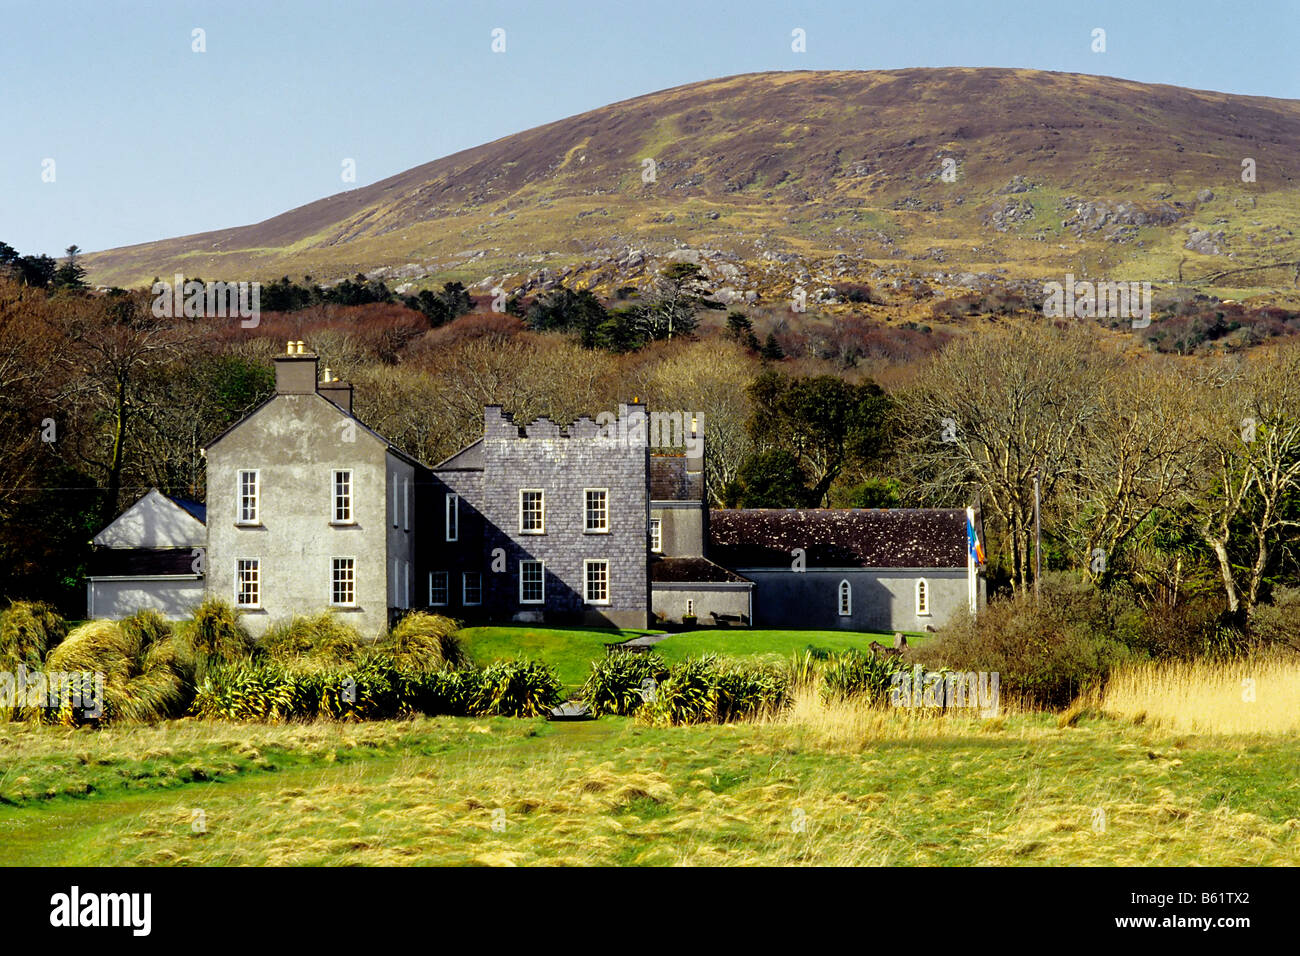 Derrynane House, Museum, summer house of Daniel O'Connor, County Kerry, Ireland, Europe - Stock Image